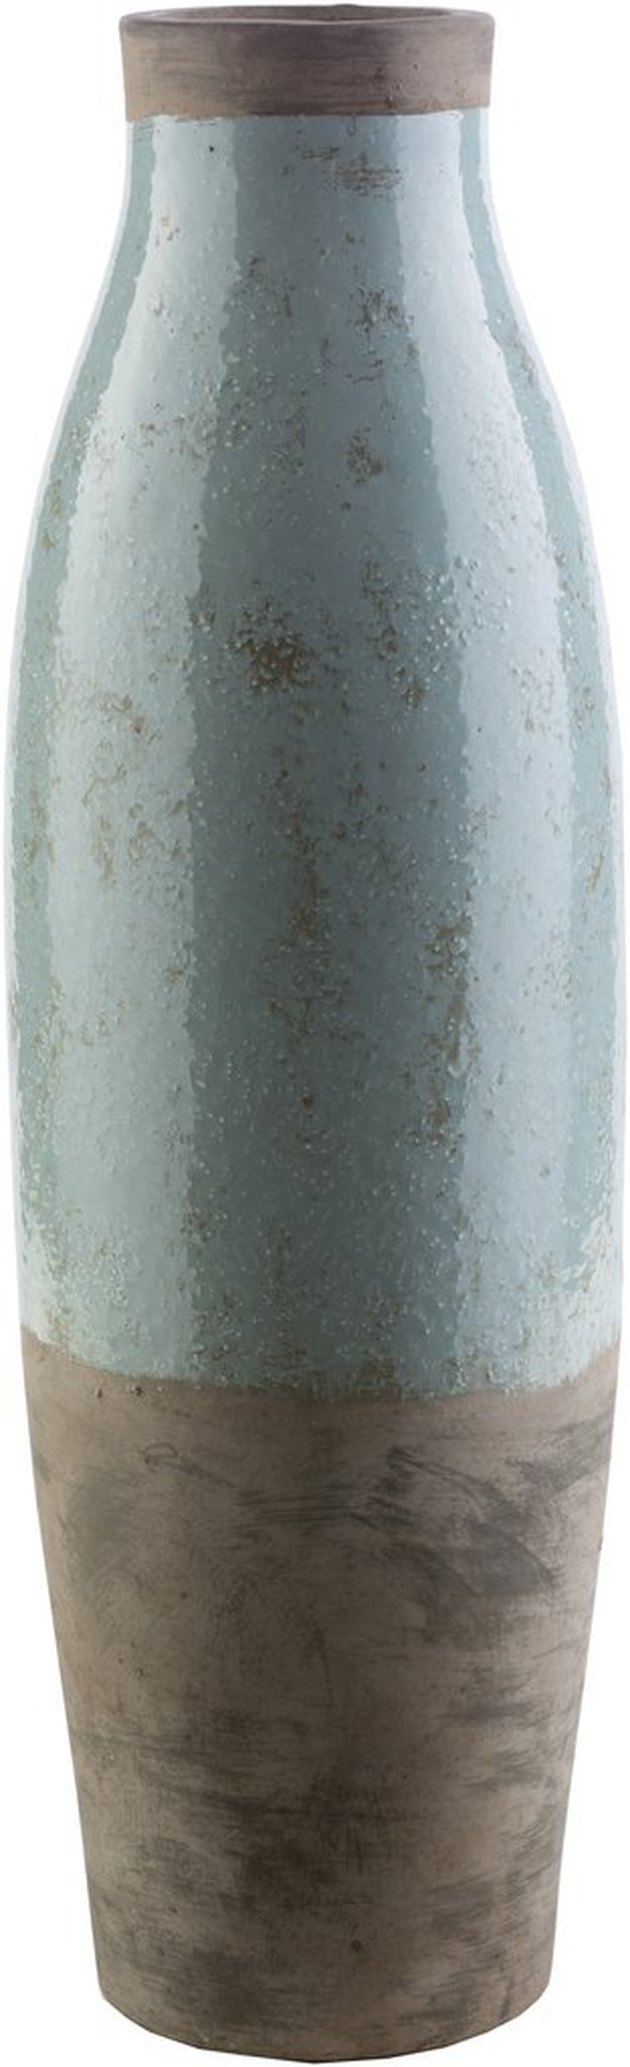 Tall cylinder ceramic vase with lower third brown and top 2/3s neutral blue